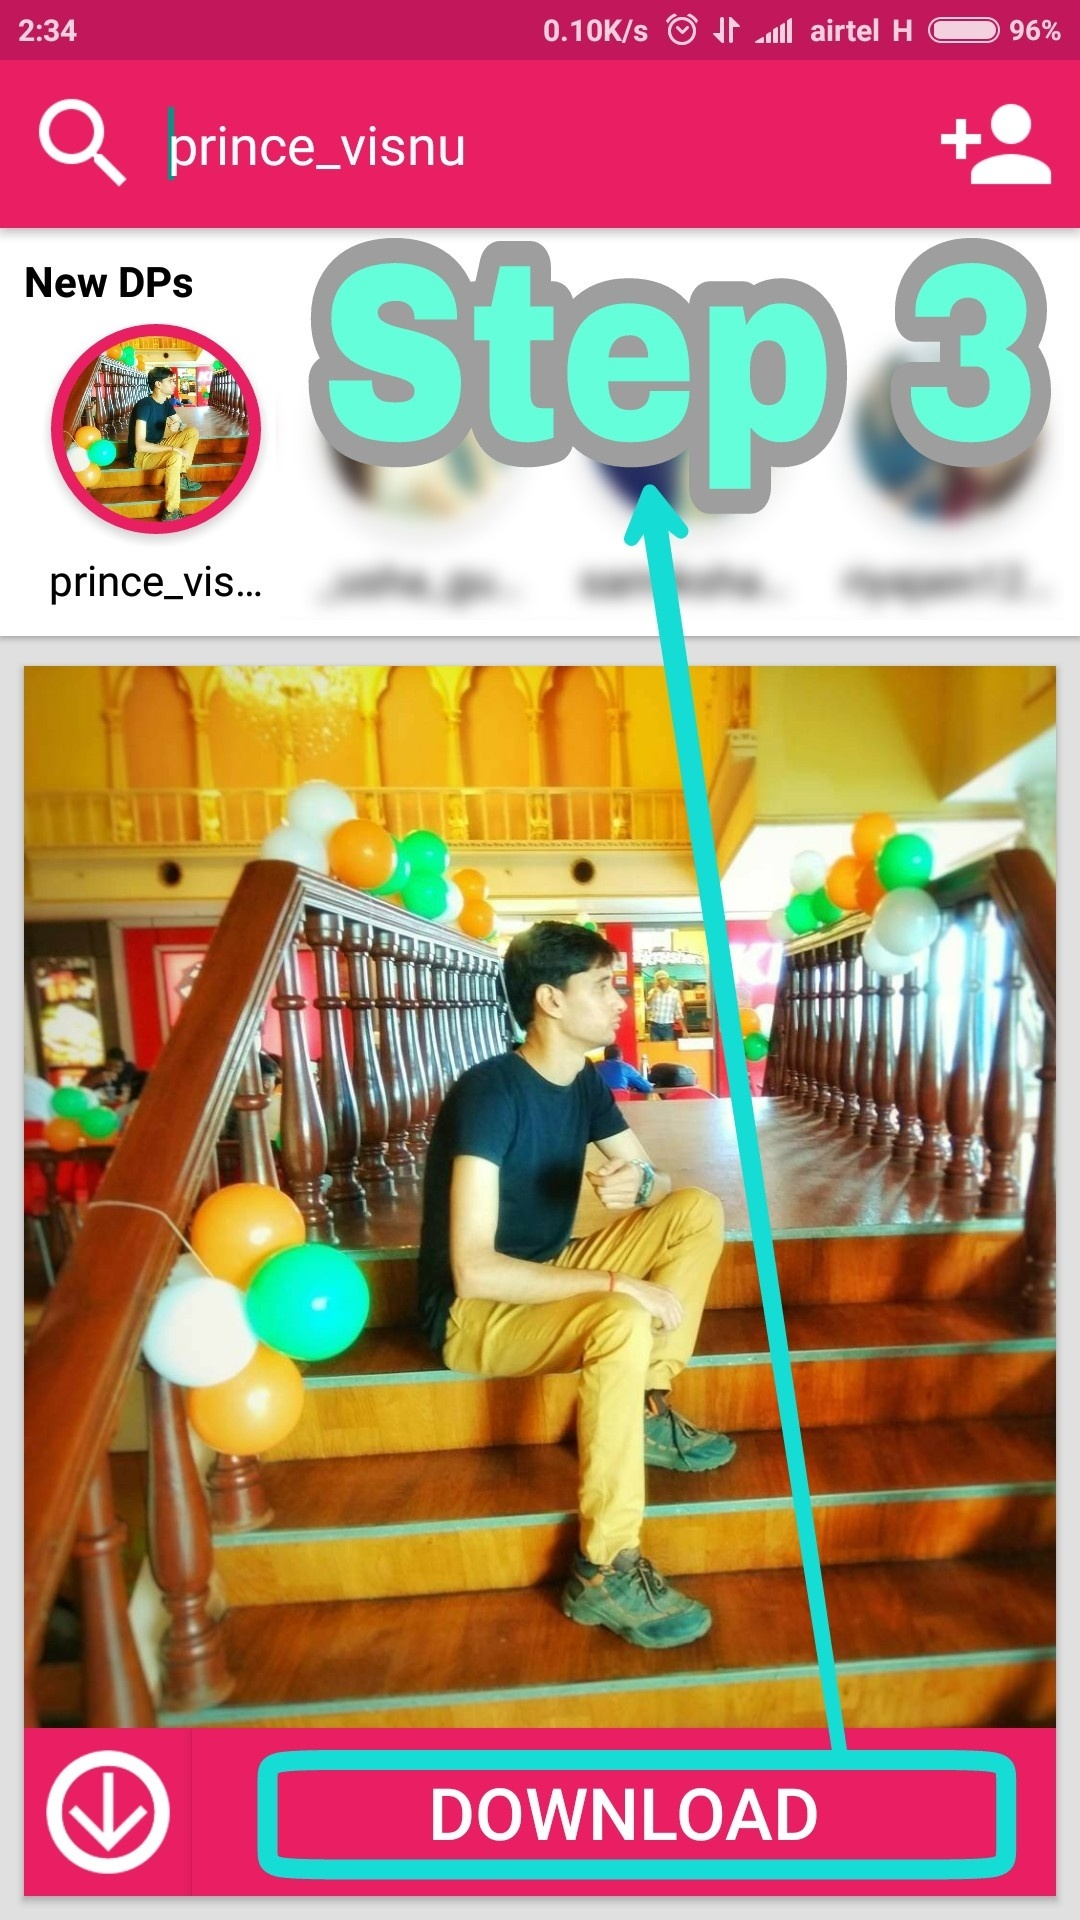 How to download my Instagram profile picture - Quora